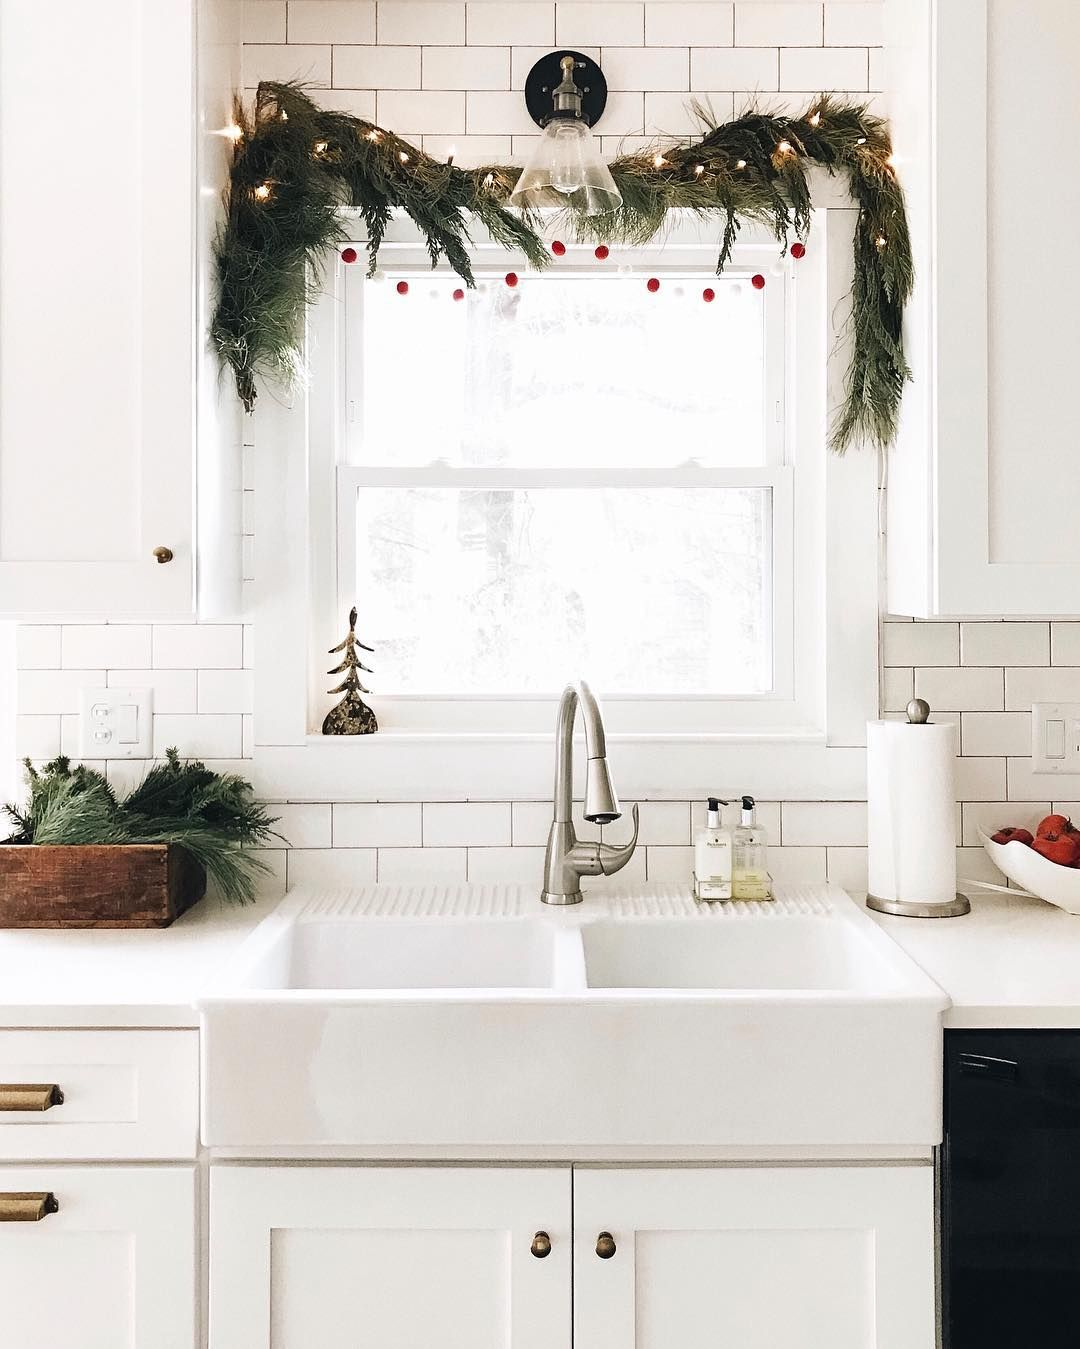 Above the window decor  how to affordably decorate every room for the holidays  itus the